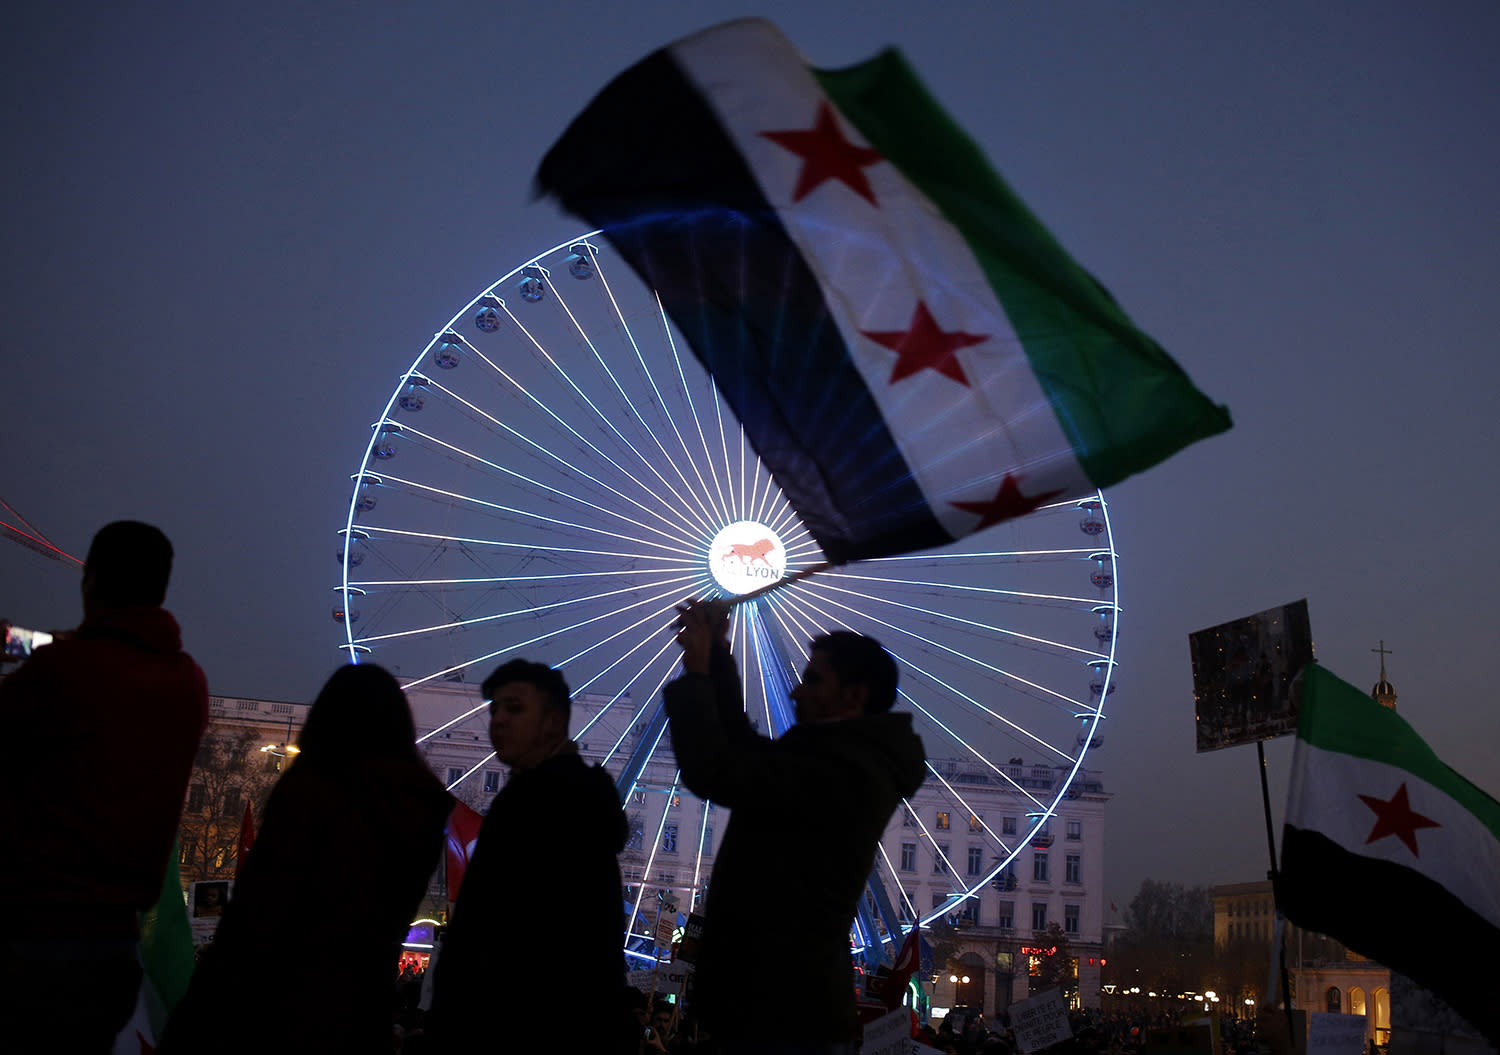 <p>A man waves a Syrian flag during a gathering to protest against the war and the humanitarian crisis in Aleppo, in Lyon, central France, Dec. 17, 2016. (Photo: Laurent Cipriani/AP) </p>